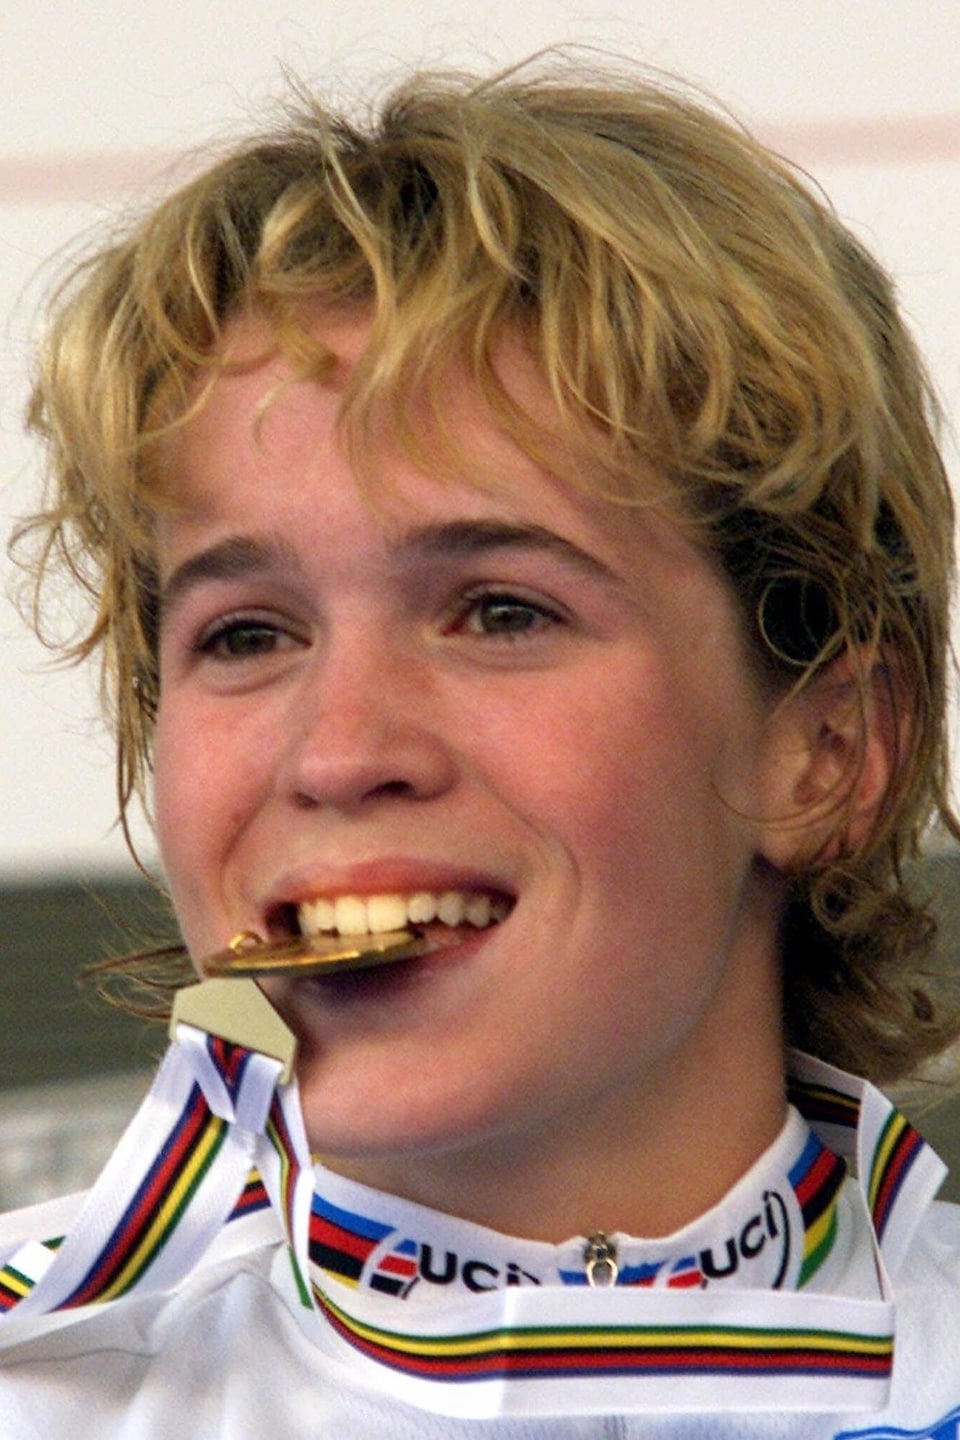 Genevieve Jeanson of Canada bites the gold medal after  winning the women's junior road race at the World Cycling Championships in Verona, Italy, Friday, October 8,1999. (AP Photo/Michael Probst)